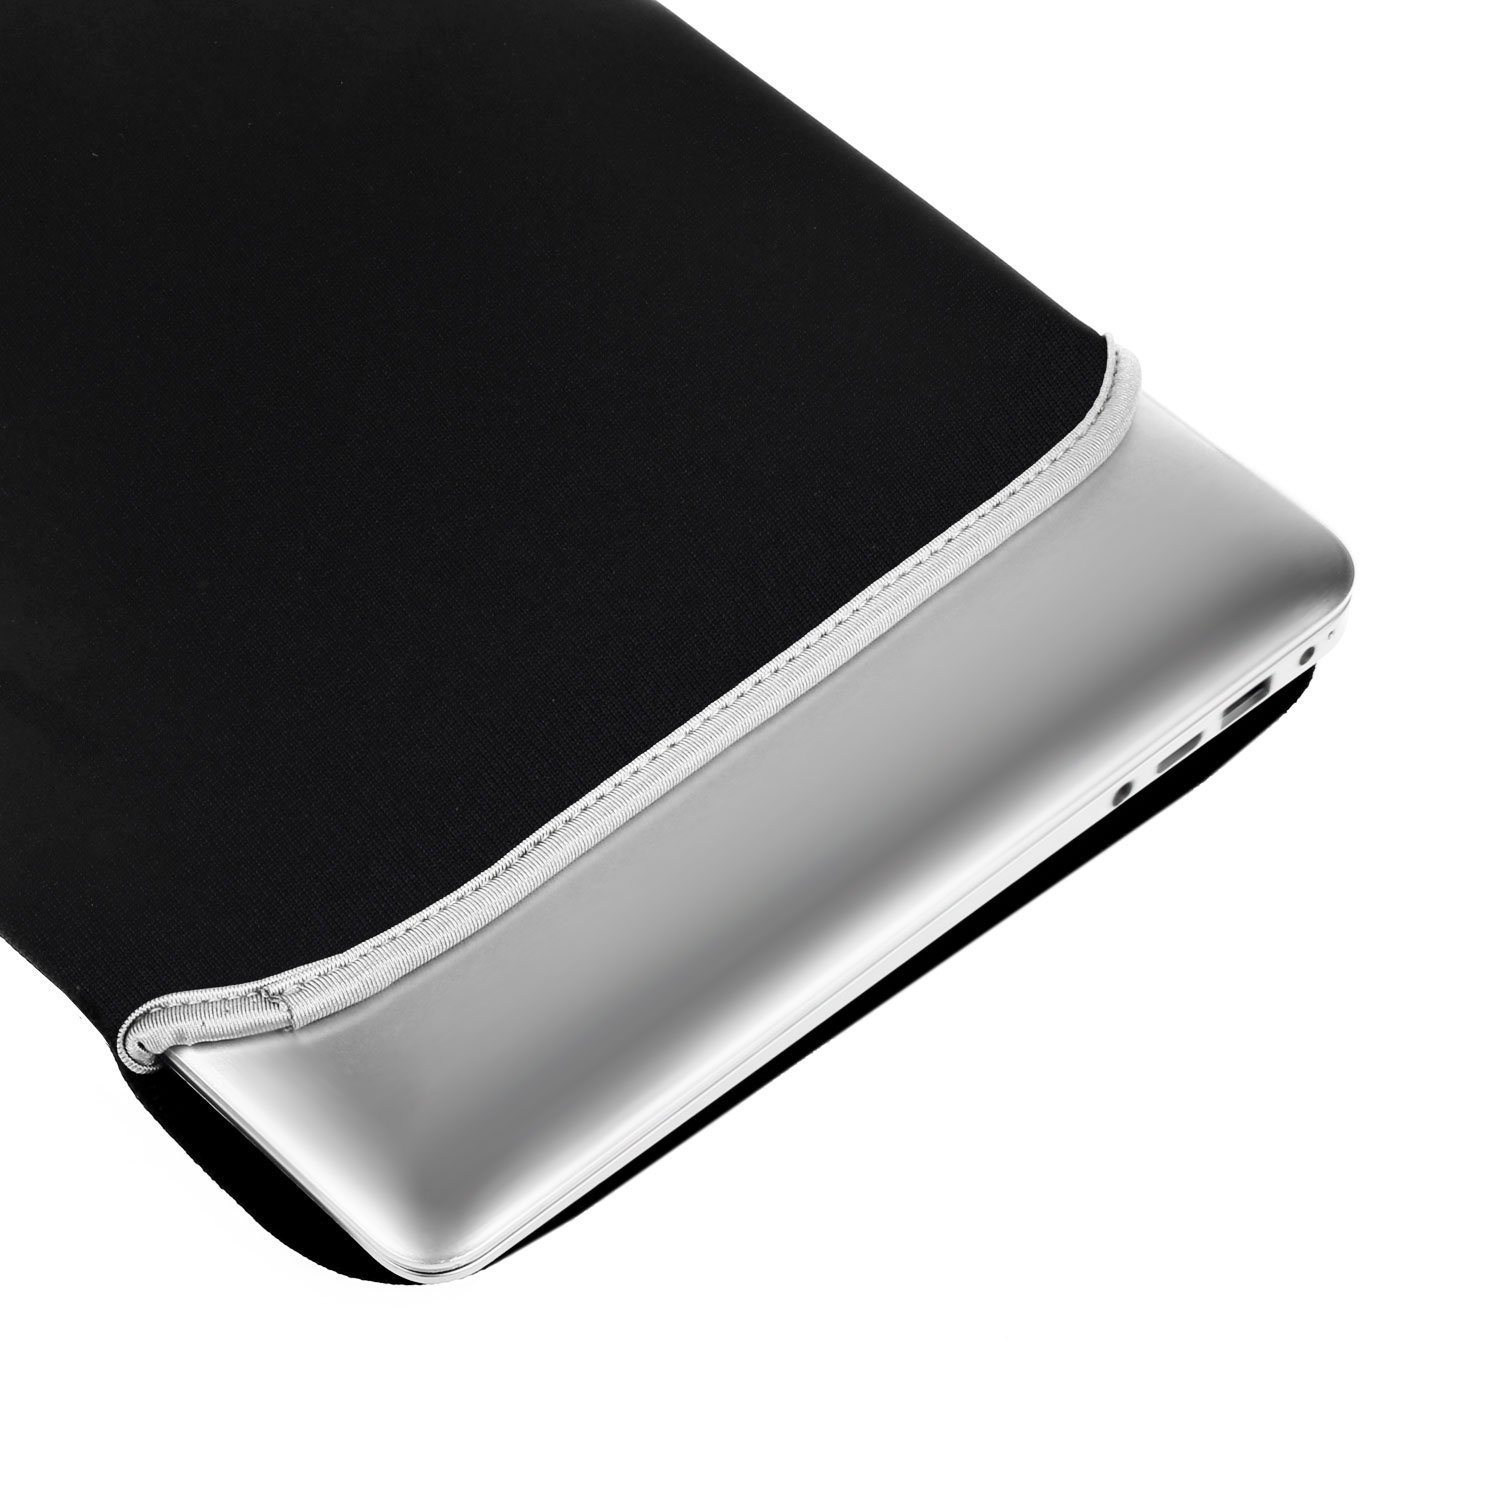 Neoprene Laptop Bag/Sleeve/Computer Bag with Any Size/Neoprene Soft Case Bag for Notebook Computer / MacBook / MacBook Air